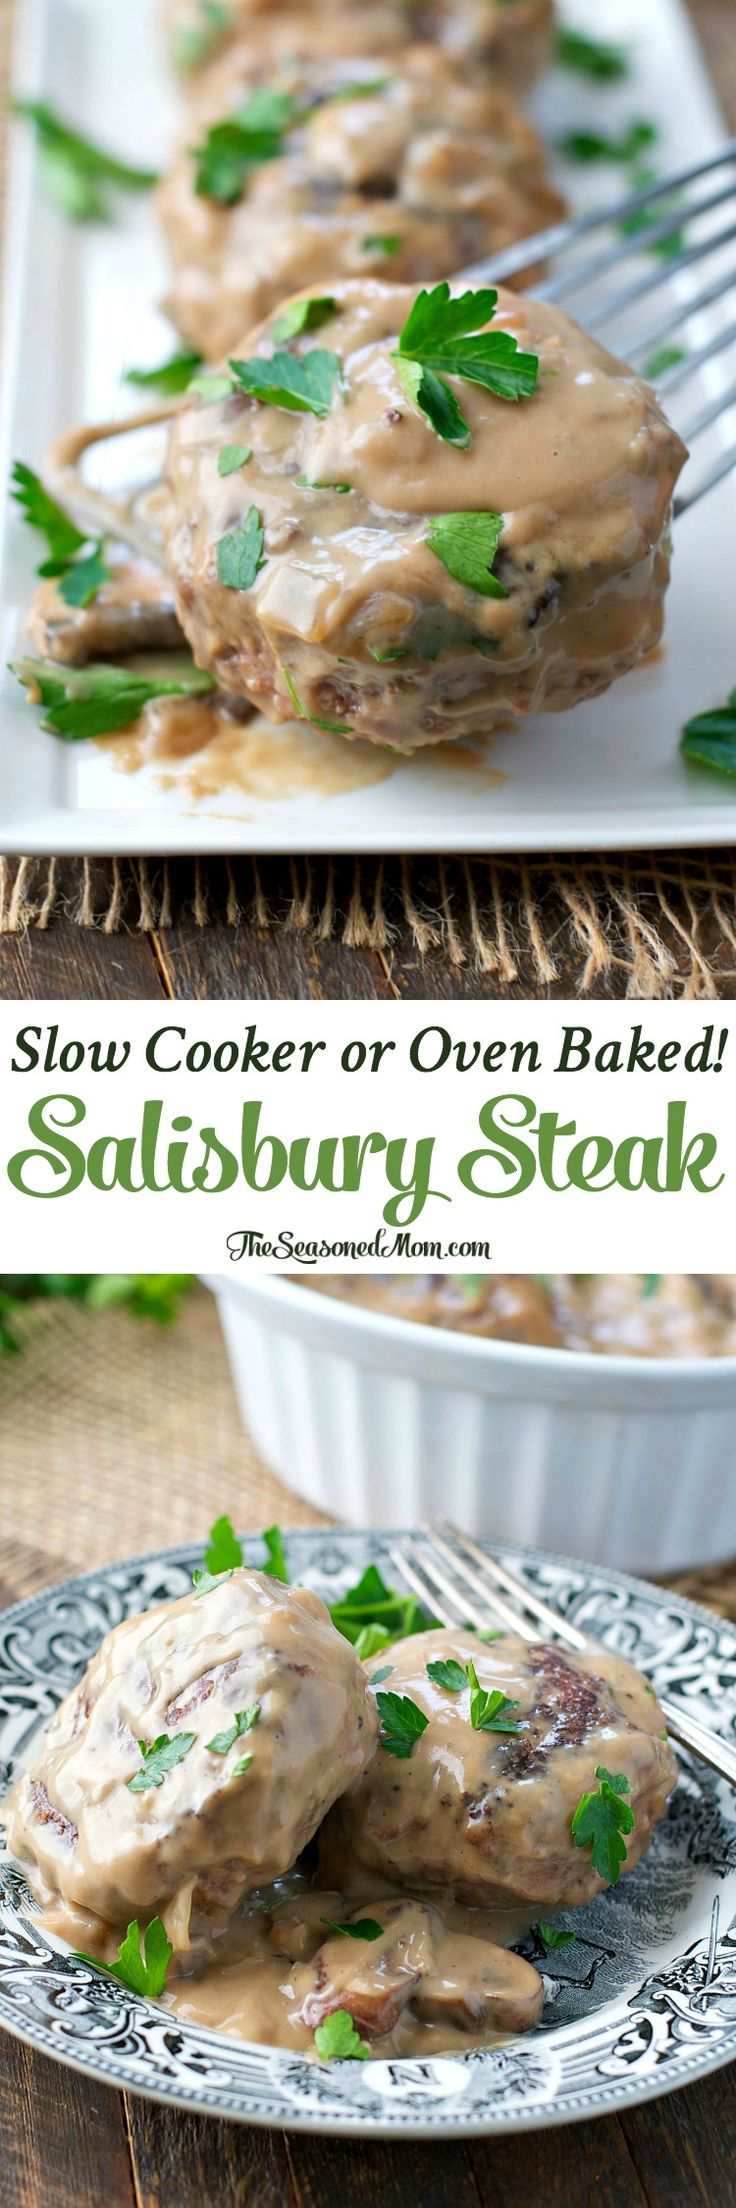 Slow Cooker or Oven Baked Salisbury Steak with Mushroom Gravy! Salisbury Steak Recipe | Salisbury Steak Crock Pot | Slow Cooker Recipes | Crock Pot Recipes | Dinner Recipes | Dinner Ideas | Ground Beef Recipes